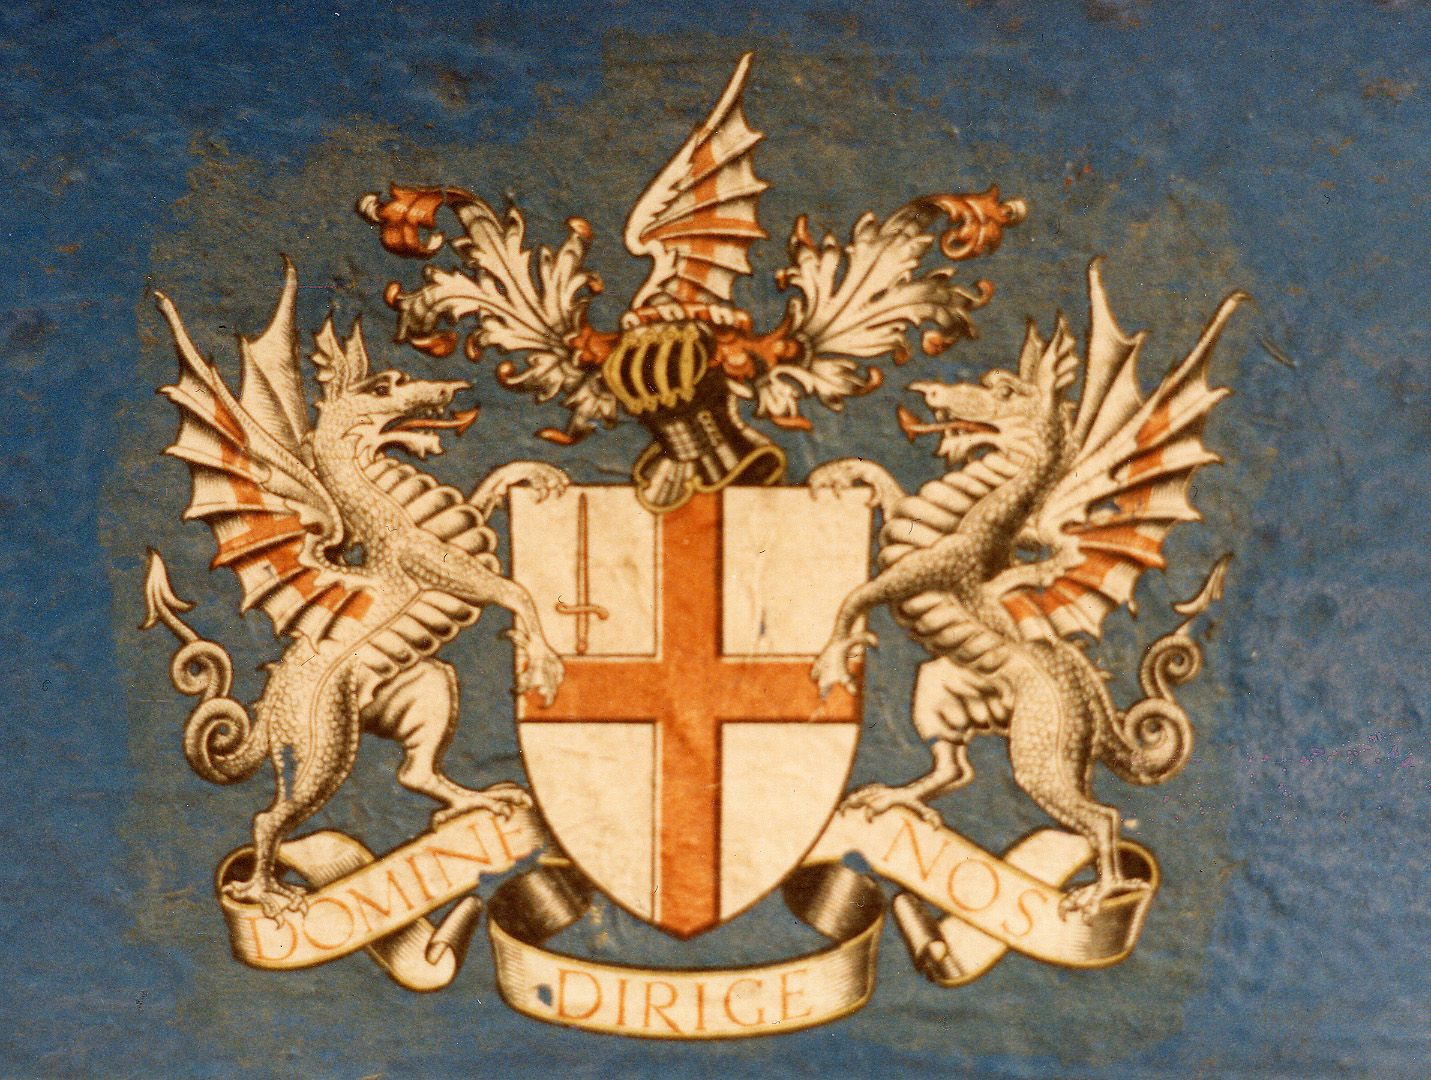 Police-Post-City-London-crest-photo.jpg